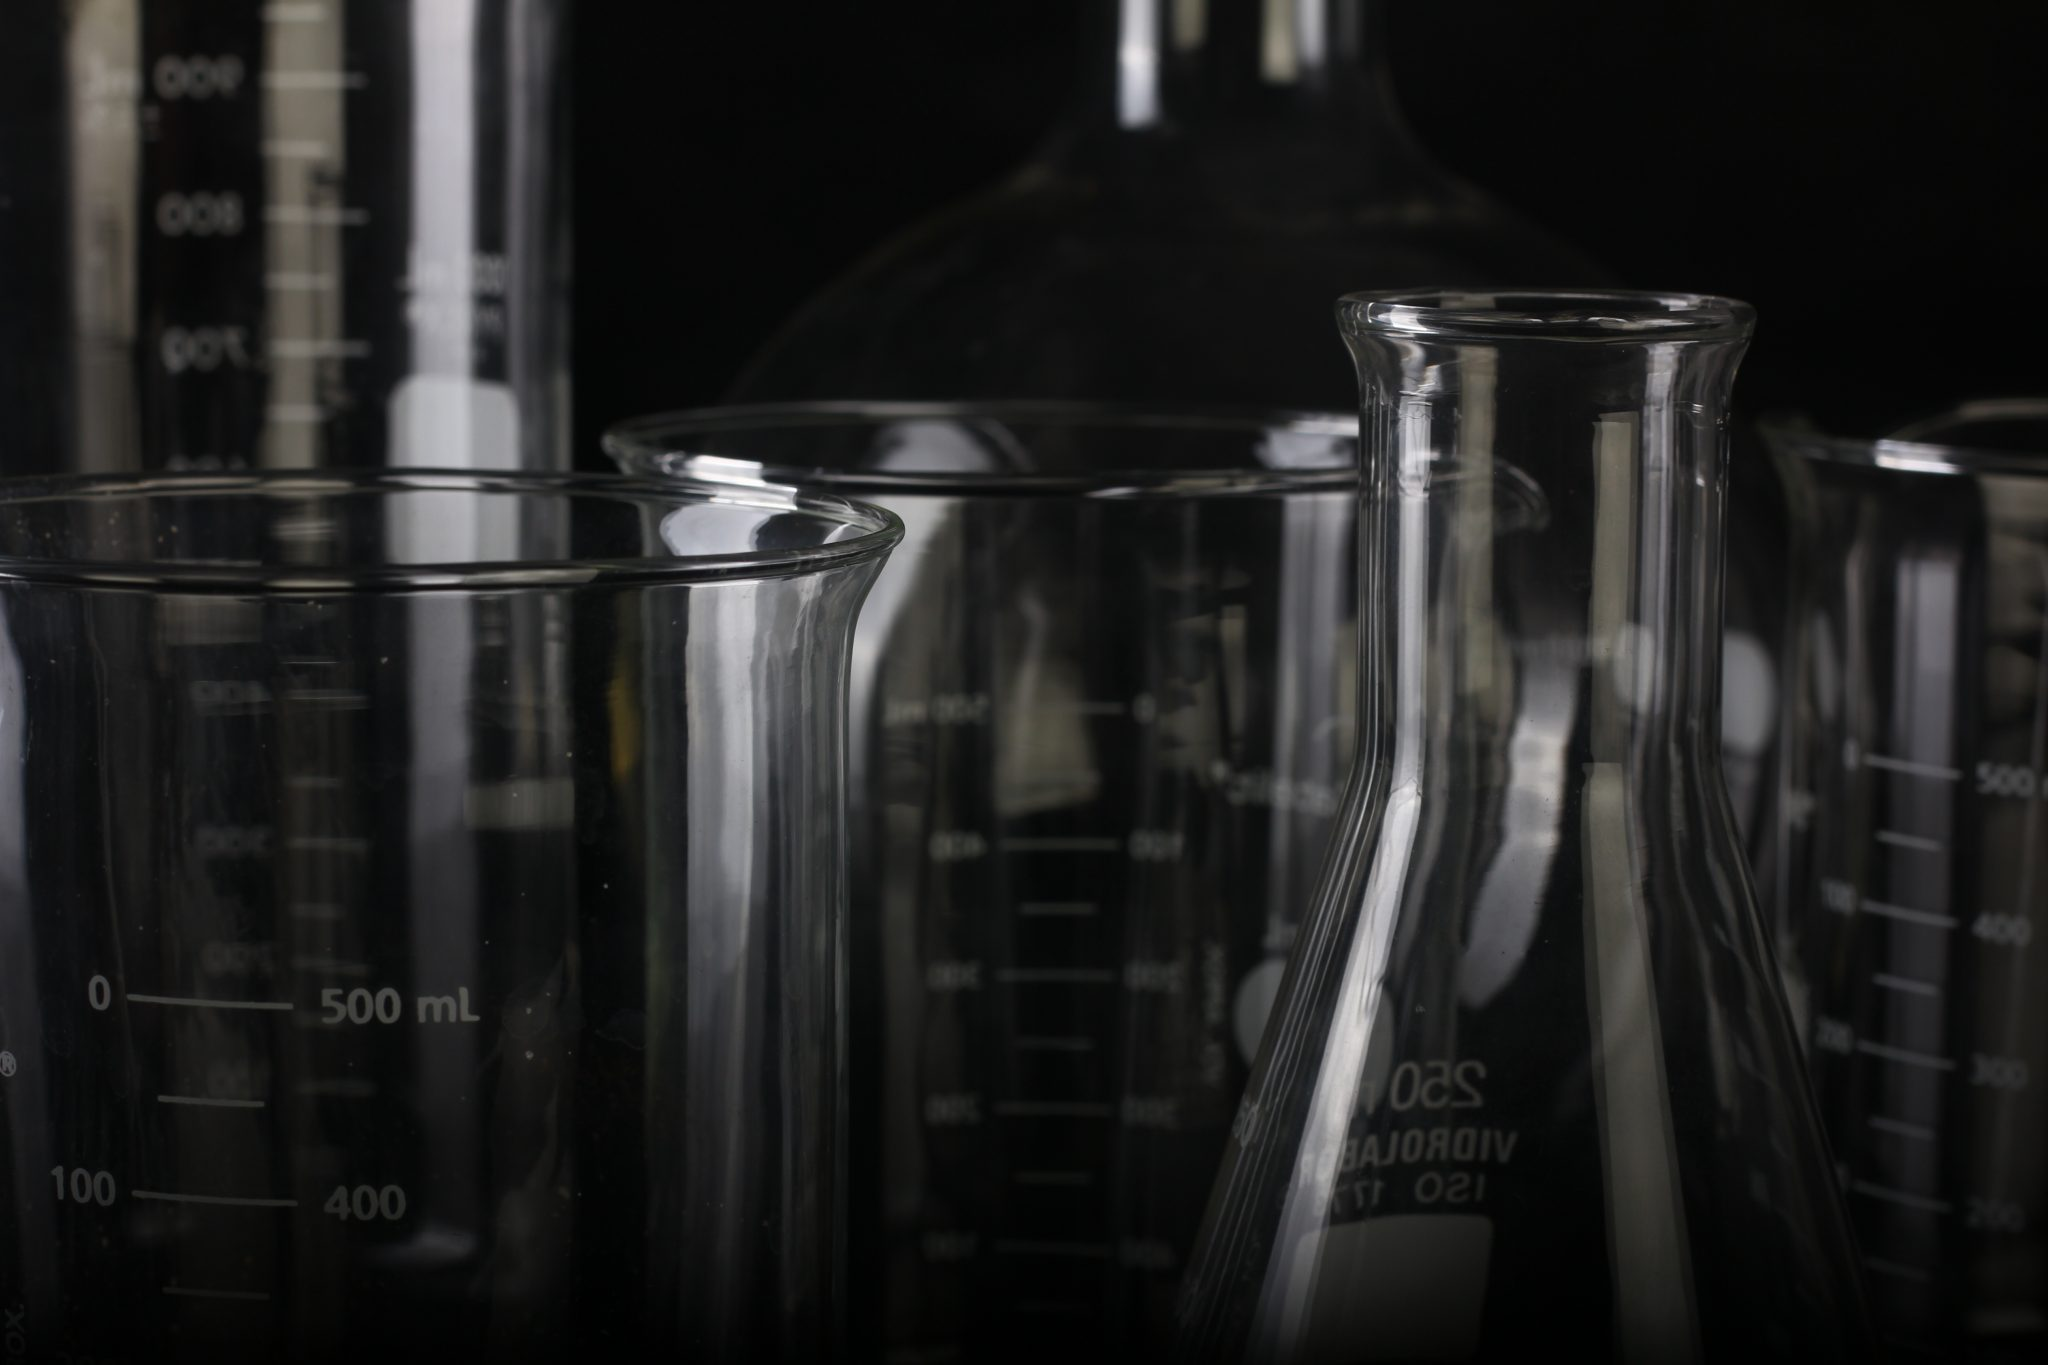 Scientific glass flasks and beakers of various sized against a black background, symbolizing the opioid fentanyl overdose crisis.